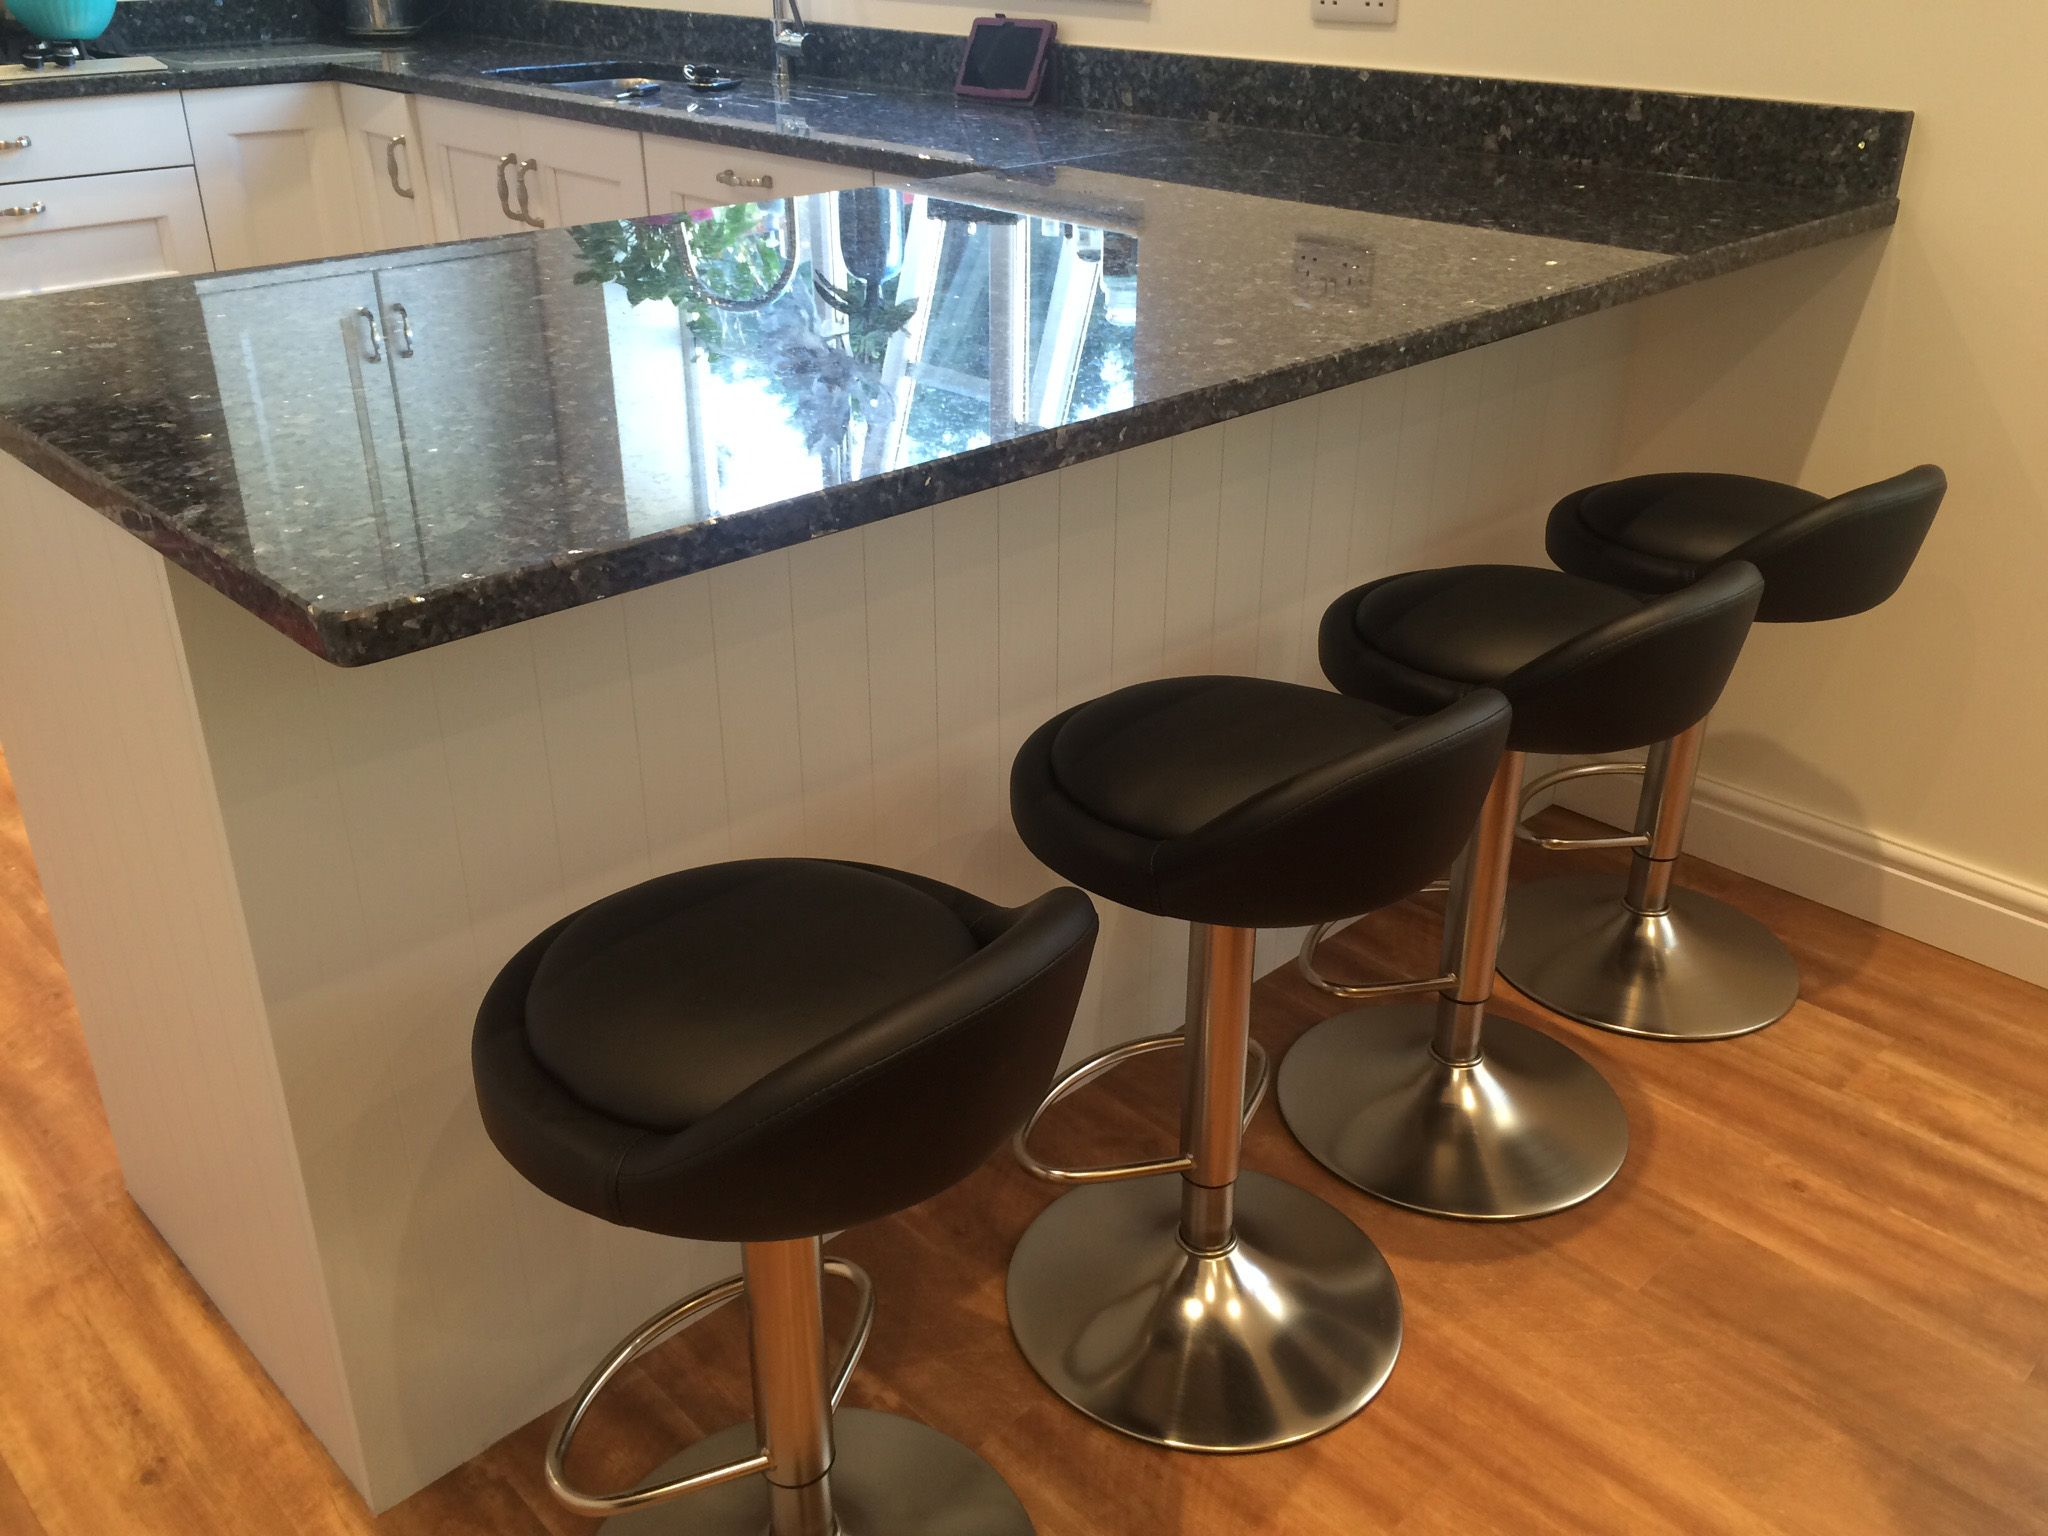 The Sofia Brushed Chrome Bar Stool Black Looks Great At